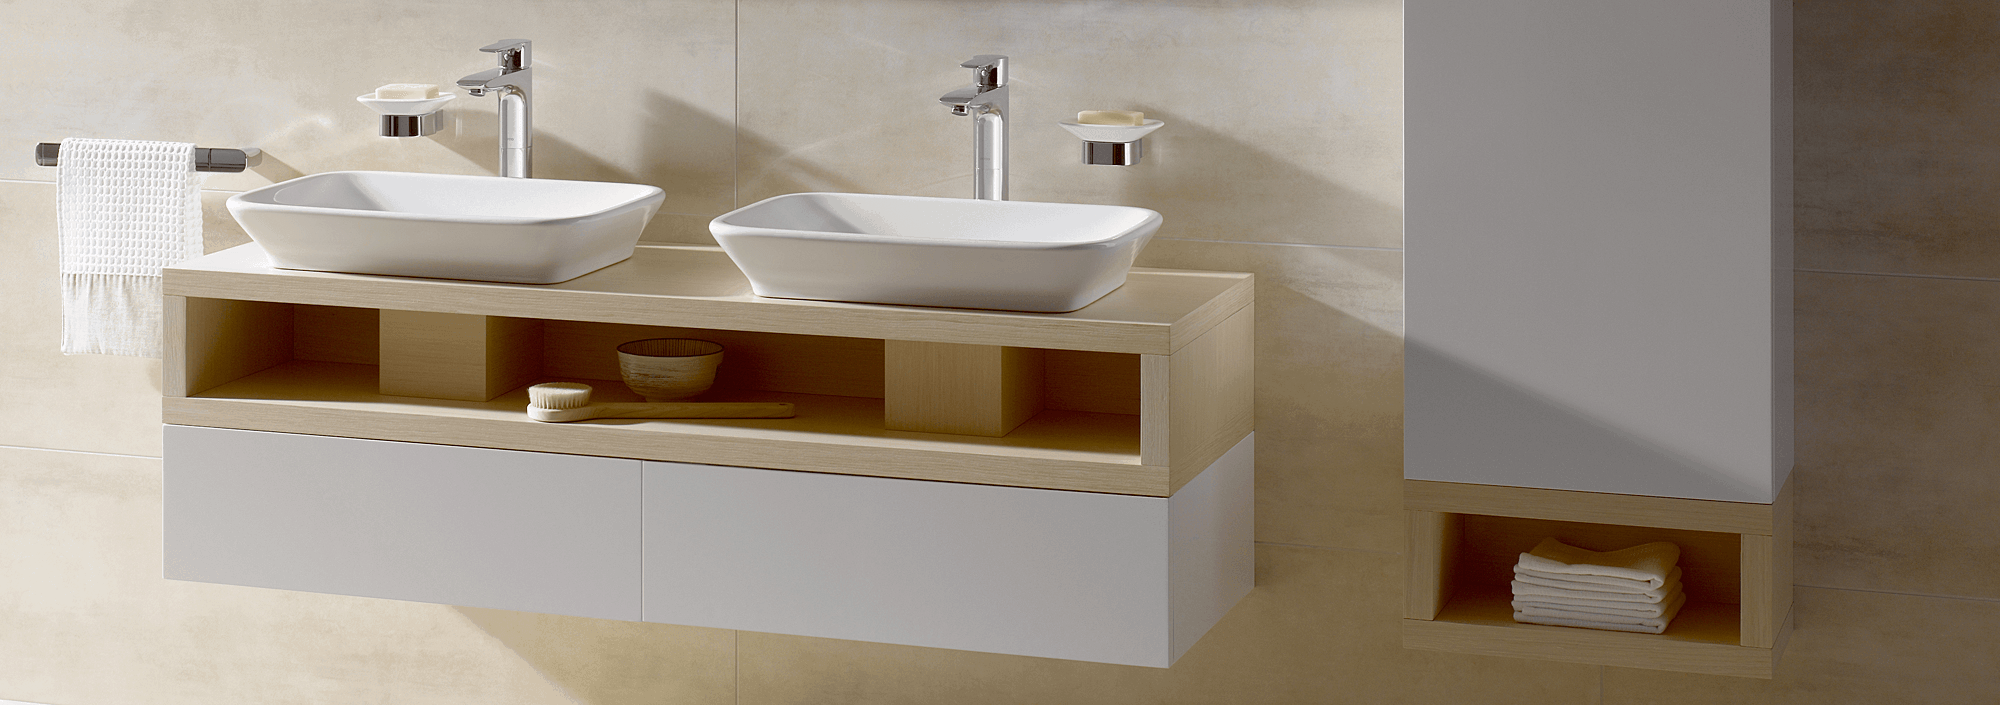 Taps - Discover more with Alternative Bathrooms London